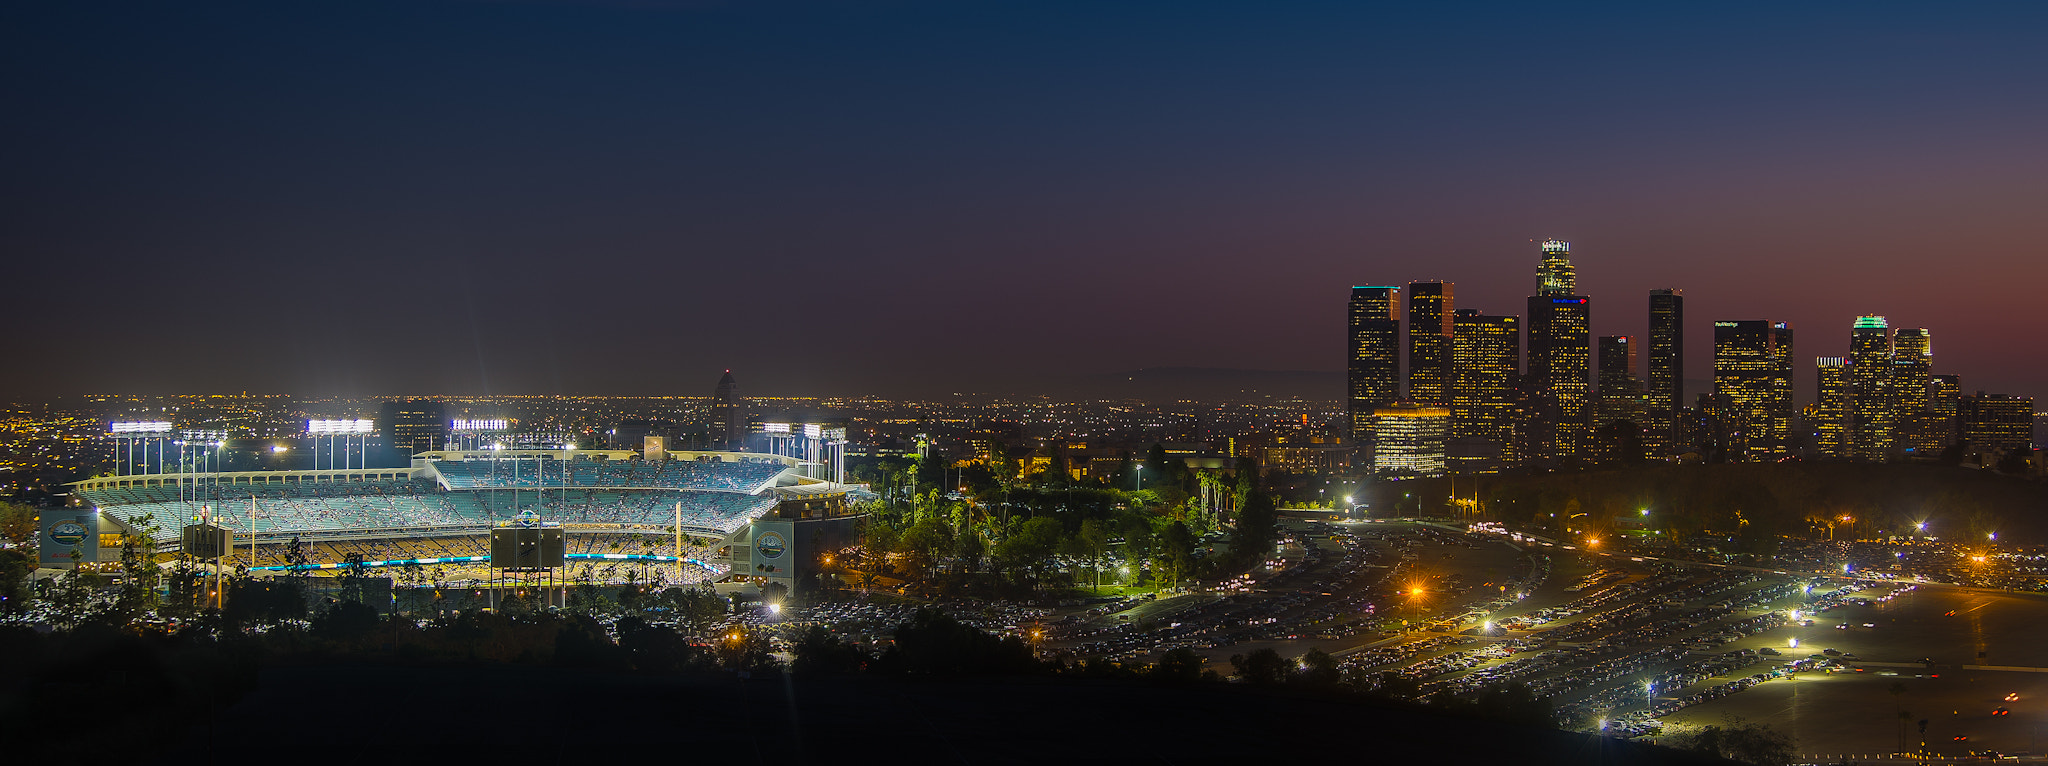 Photograph Dodger Stadium  by Bobby Gibbons on 500px